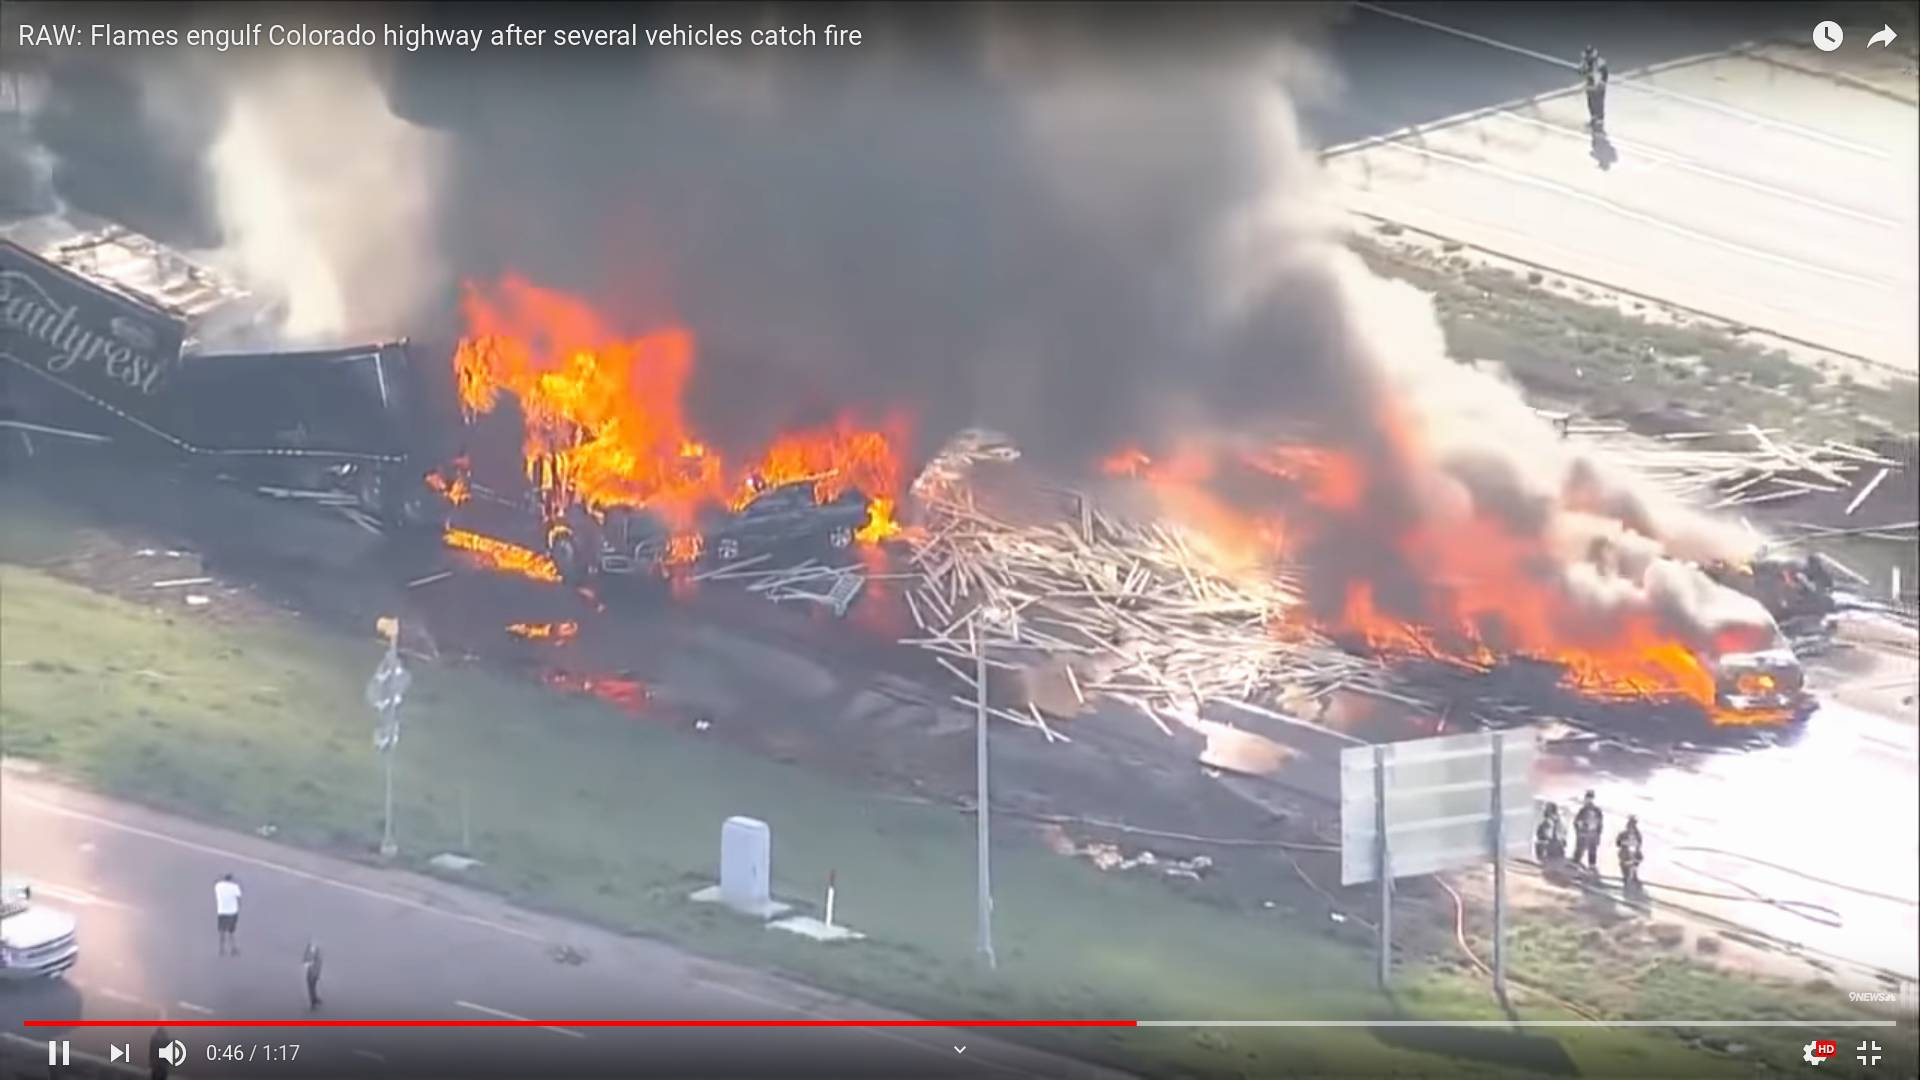 Цитата из видео «RAW: Flames engulf Colorado highway after several vehicles catch fire» пользователя 9NEWS.